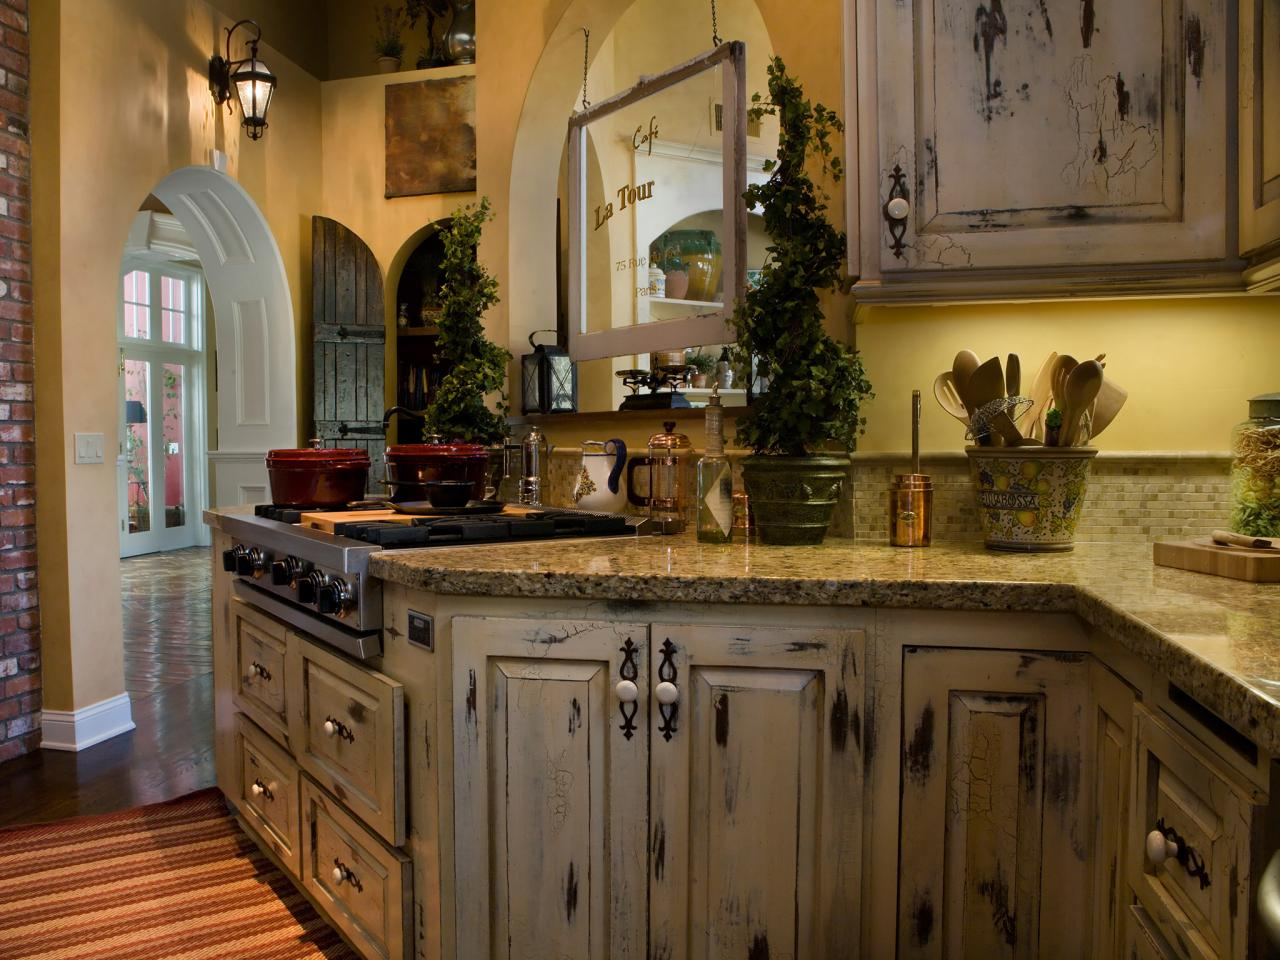 Distressed Kitchen Cabinets: Pictures & Ideas From HGTV | HGTV